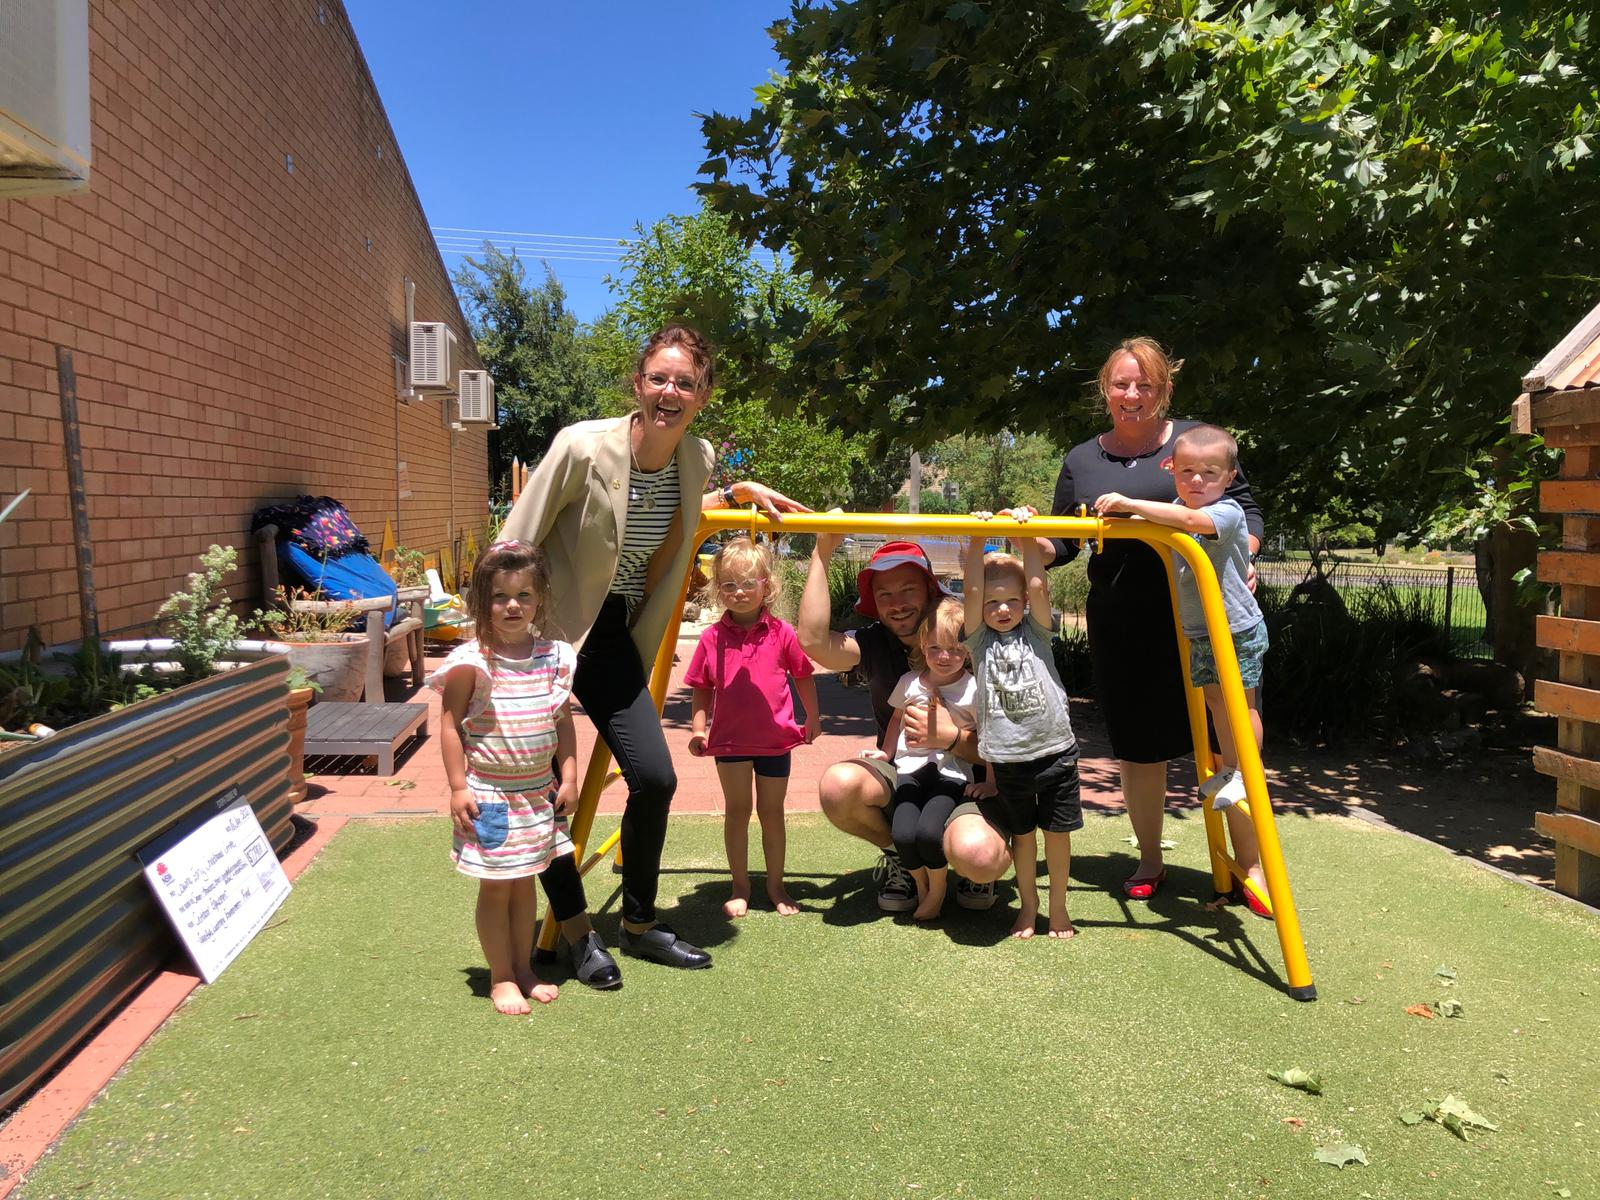 Steph Cooke and Sussan Callaghan stand with small children around a bright yellow climbing frame.